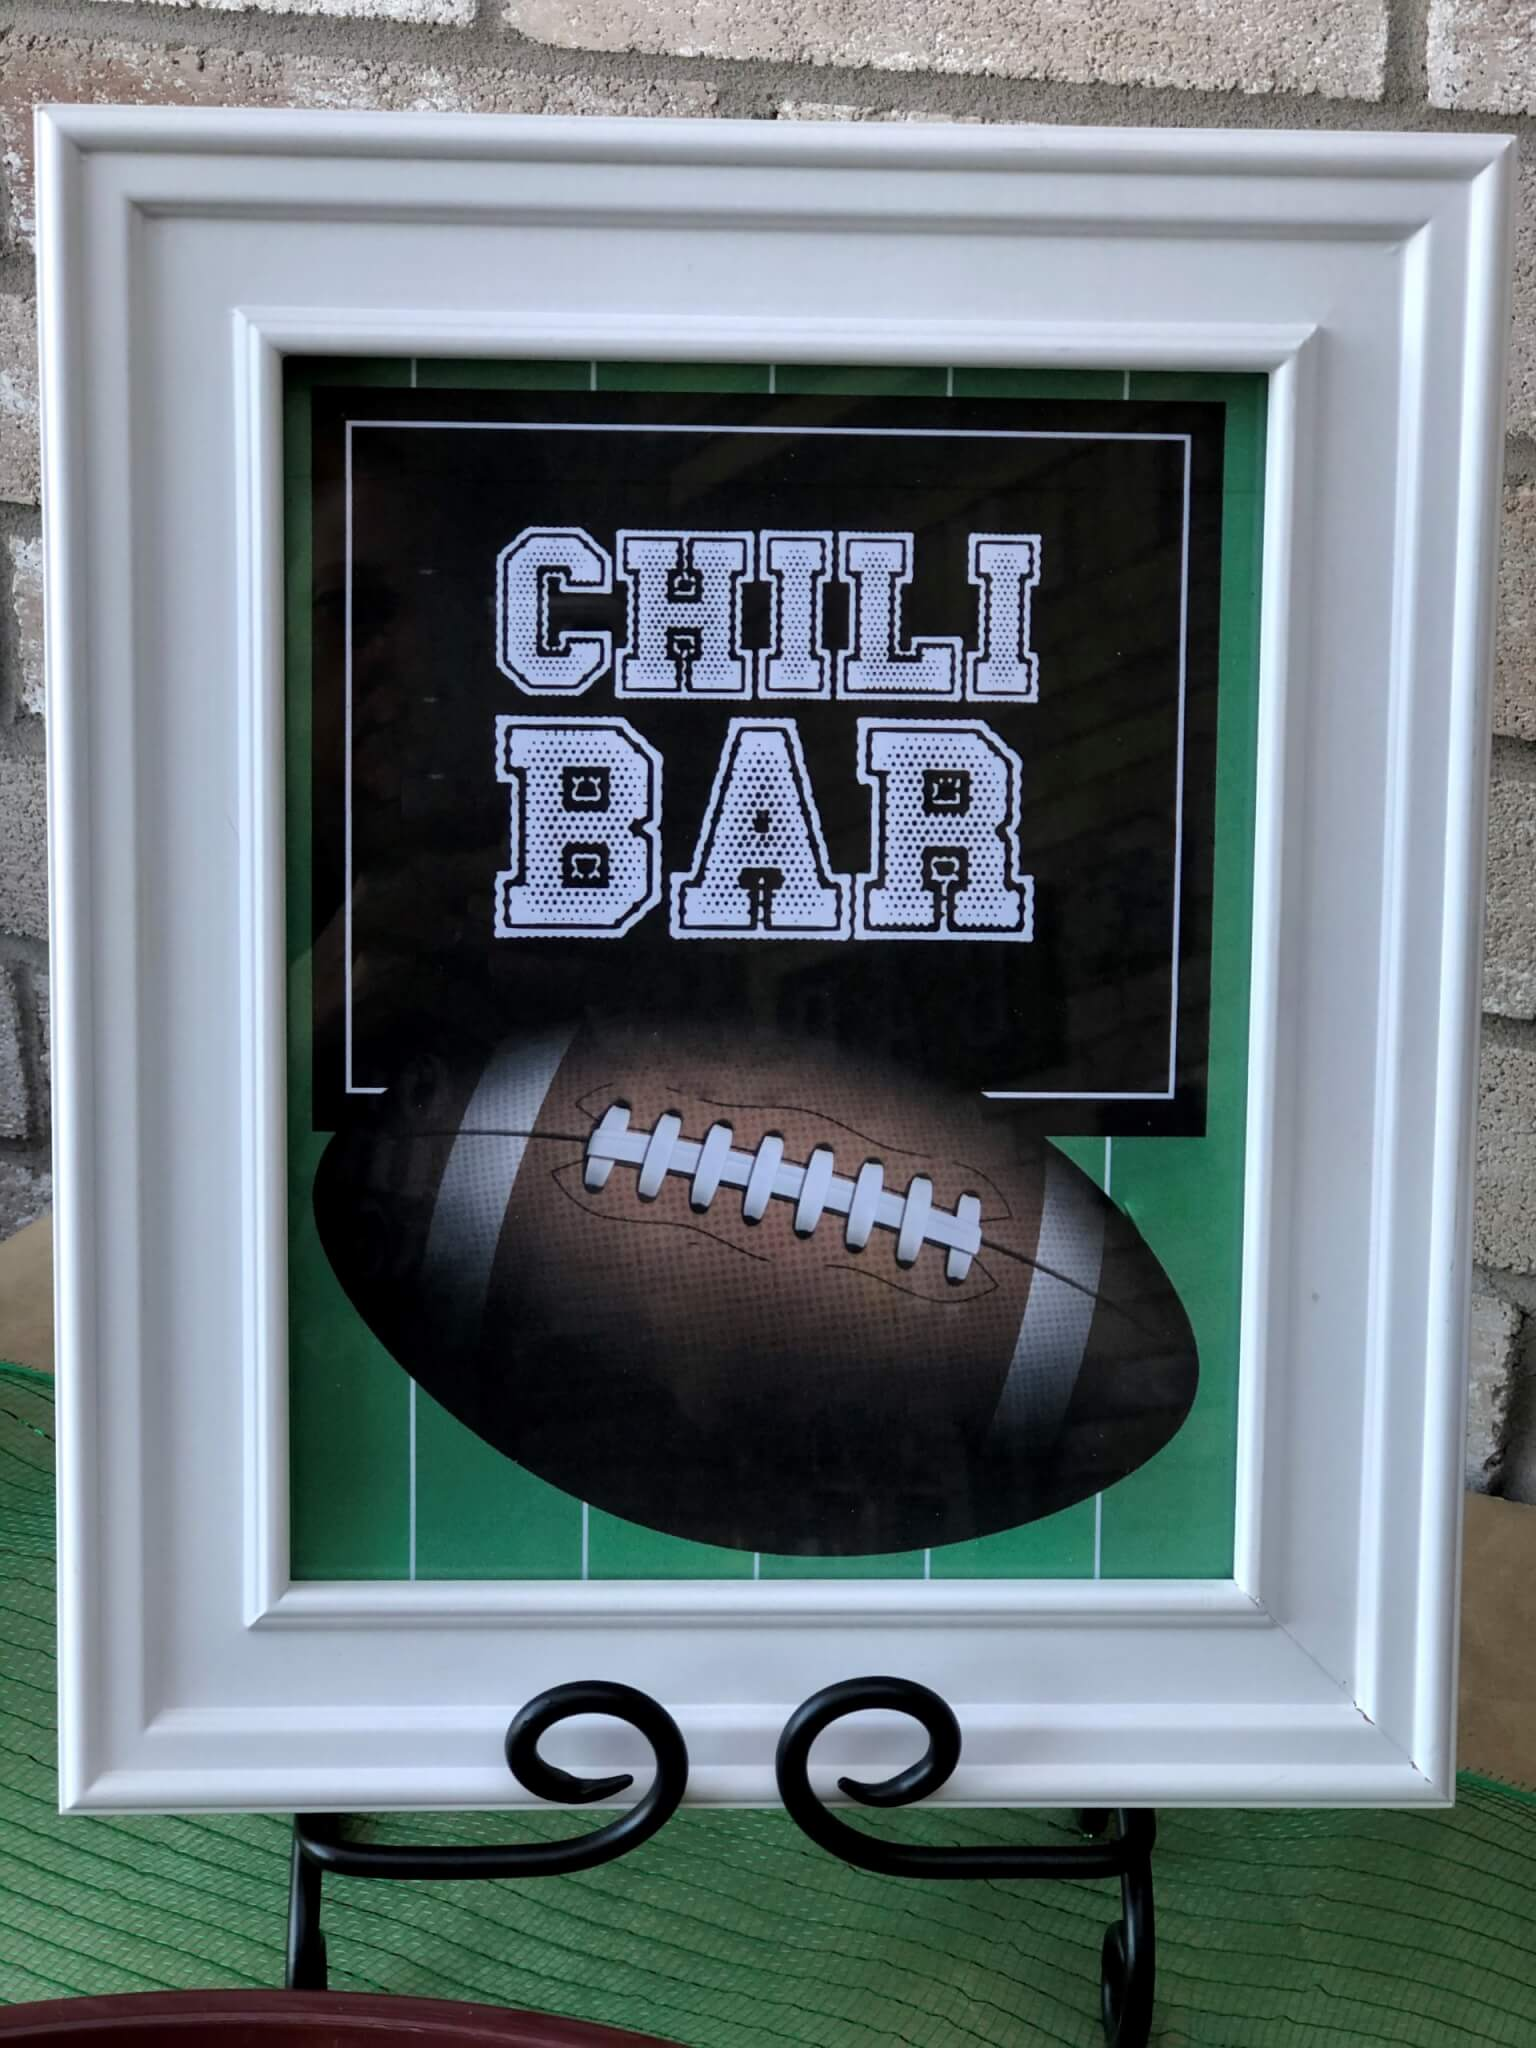 Creating a chili bar is a fun and easy way to host a gathering for any occasion. These ideas for toppings, decorations, sides, and more will help you to throw an epic chili party your guests will love. Free printables with multiple themes included! #chilibarparty #woodlandthemeparty #footballchilibar #smallgesturesmatter